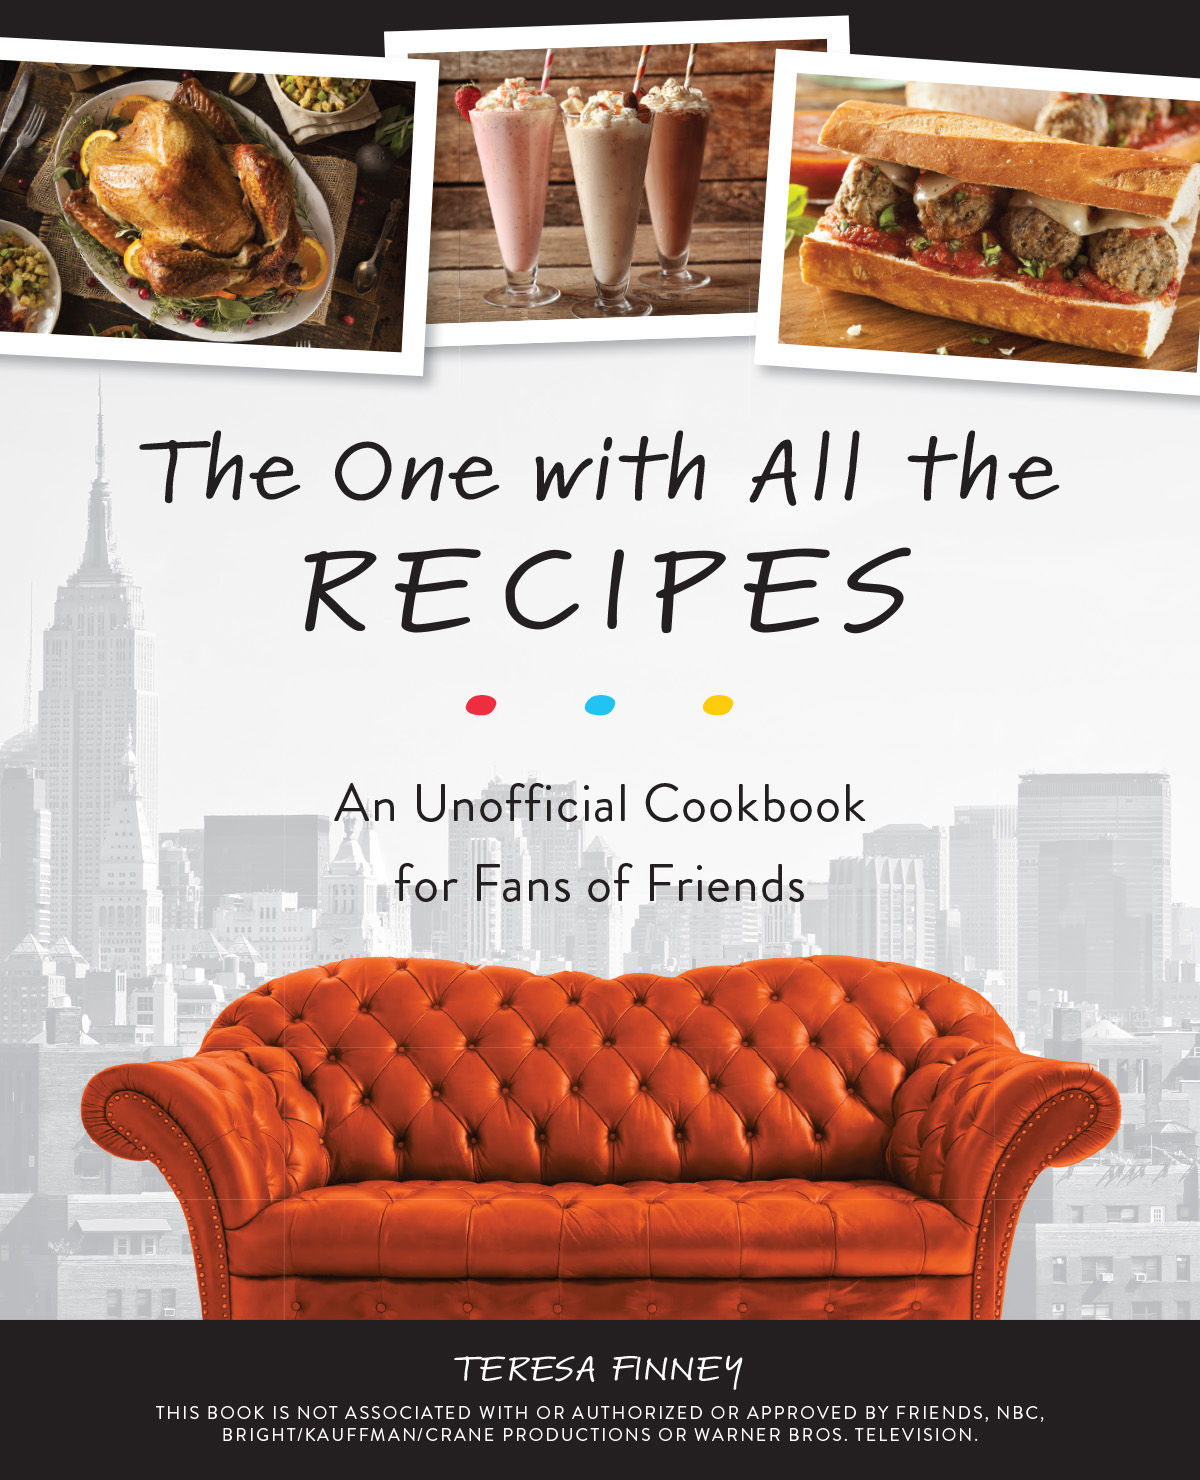 Friends Cookbook Cover The One with All the Recipes